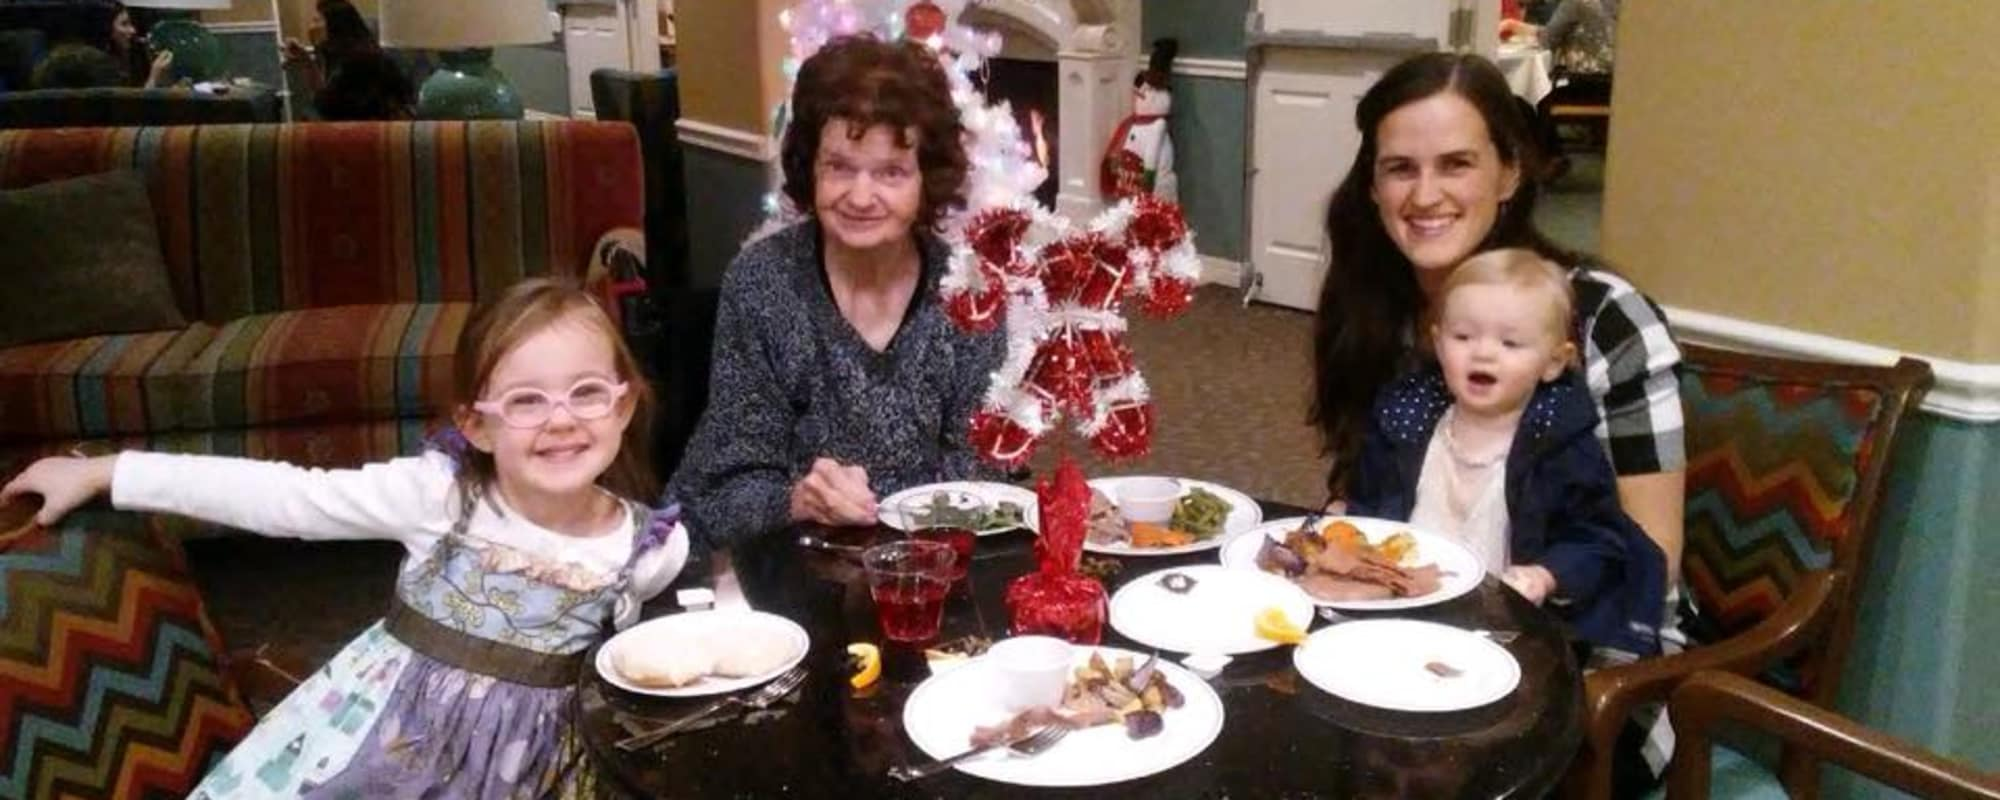 Seniors eating with children at The Charleston at Cedar Hills in Cedar Hills, Utah